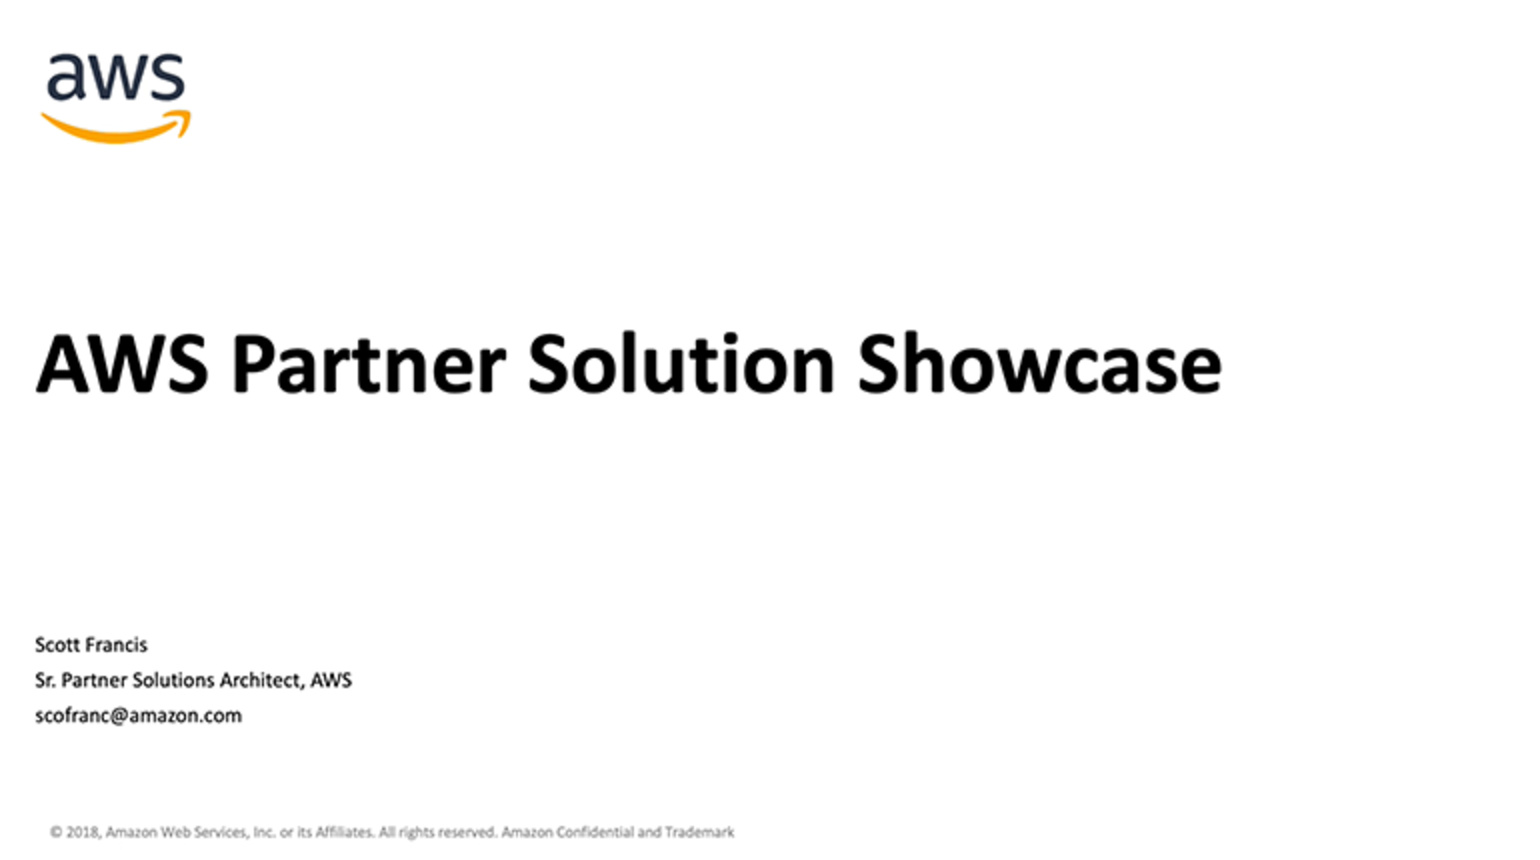 AWS Partner Solution Showcase presented by Scott Francis IoT Partner Solutions Architect at Amazon Web Services